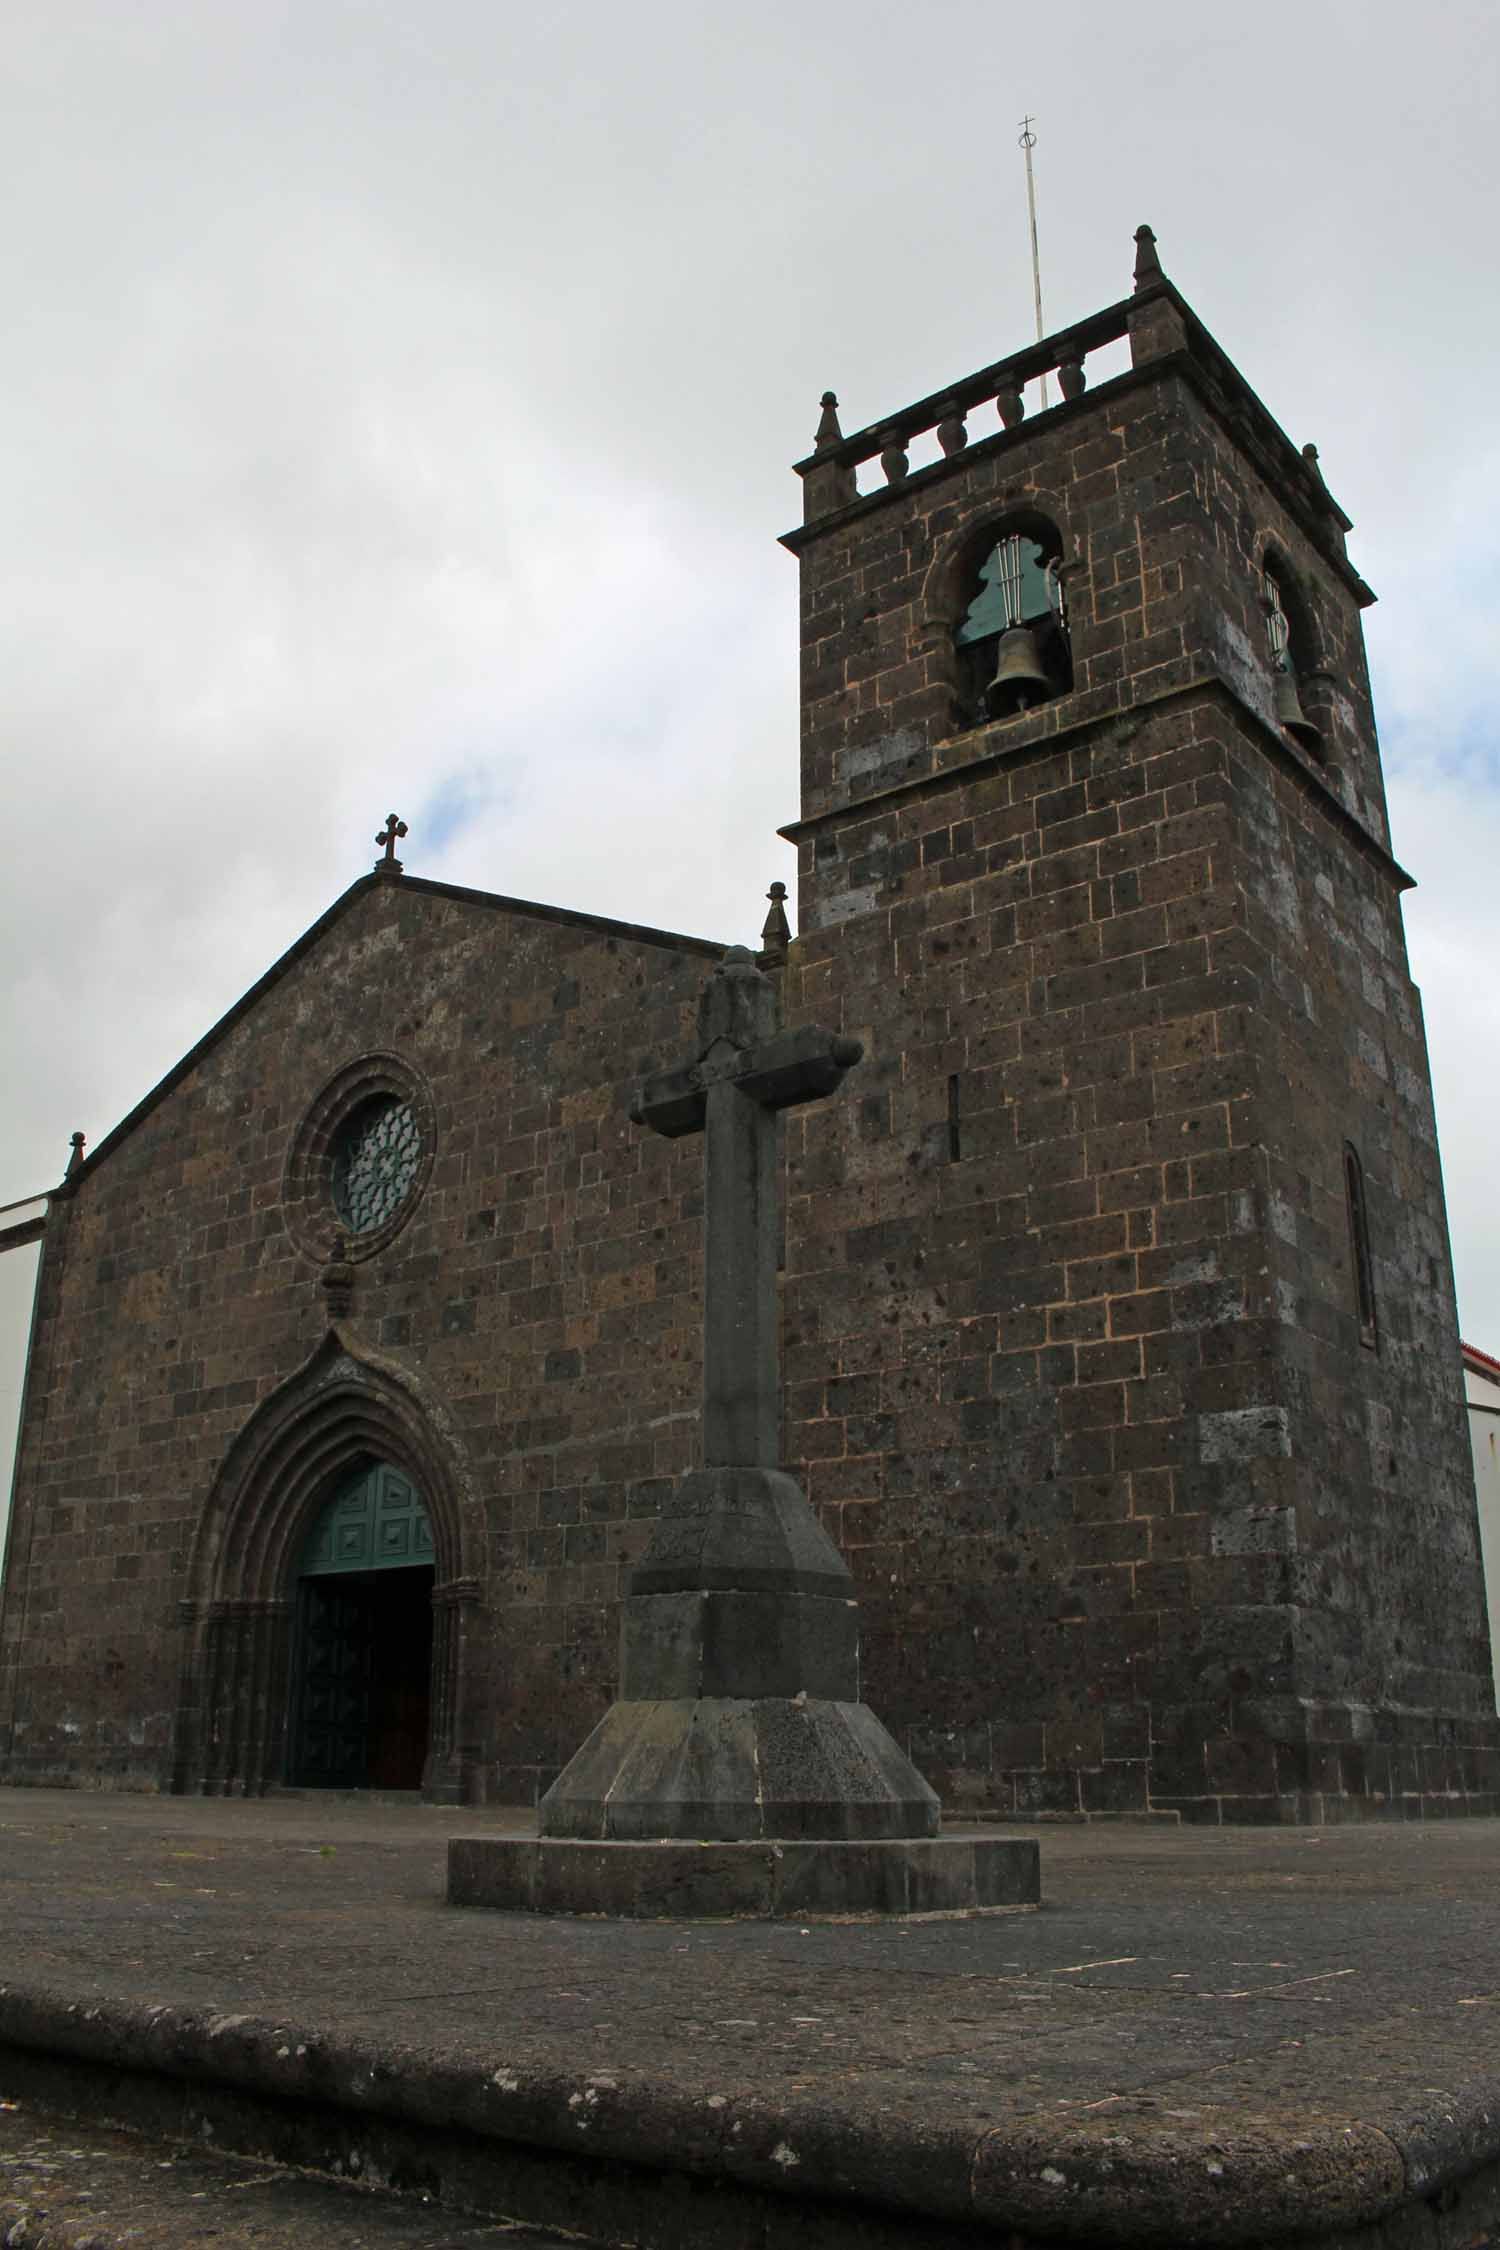 The Saint Michael Archangel in Vila Franca do Campo, São Miguel island, Azores